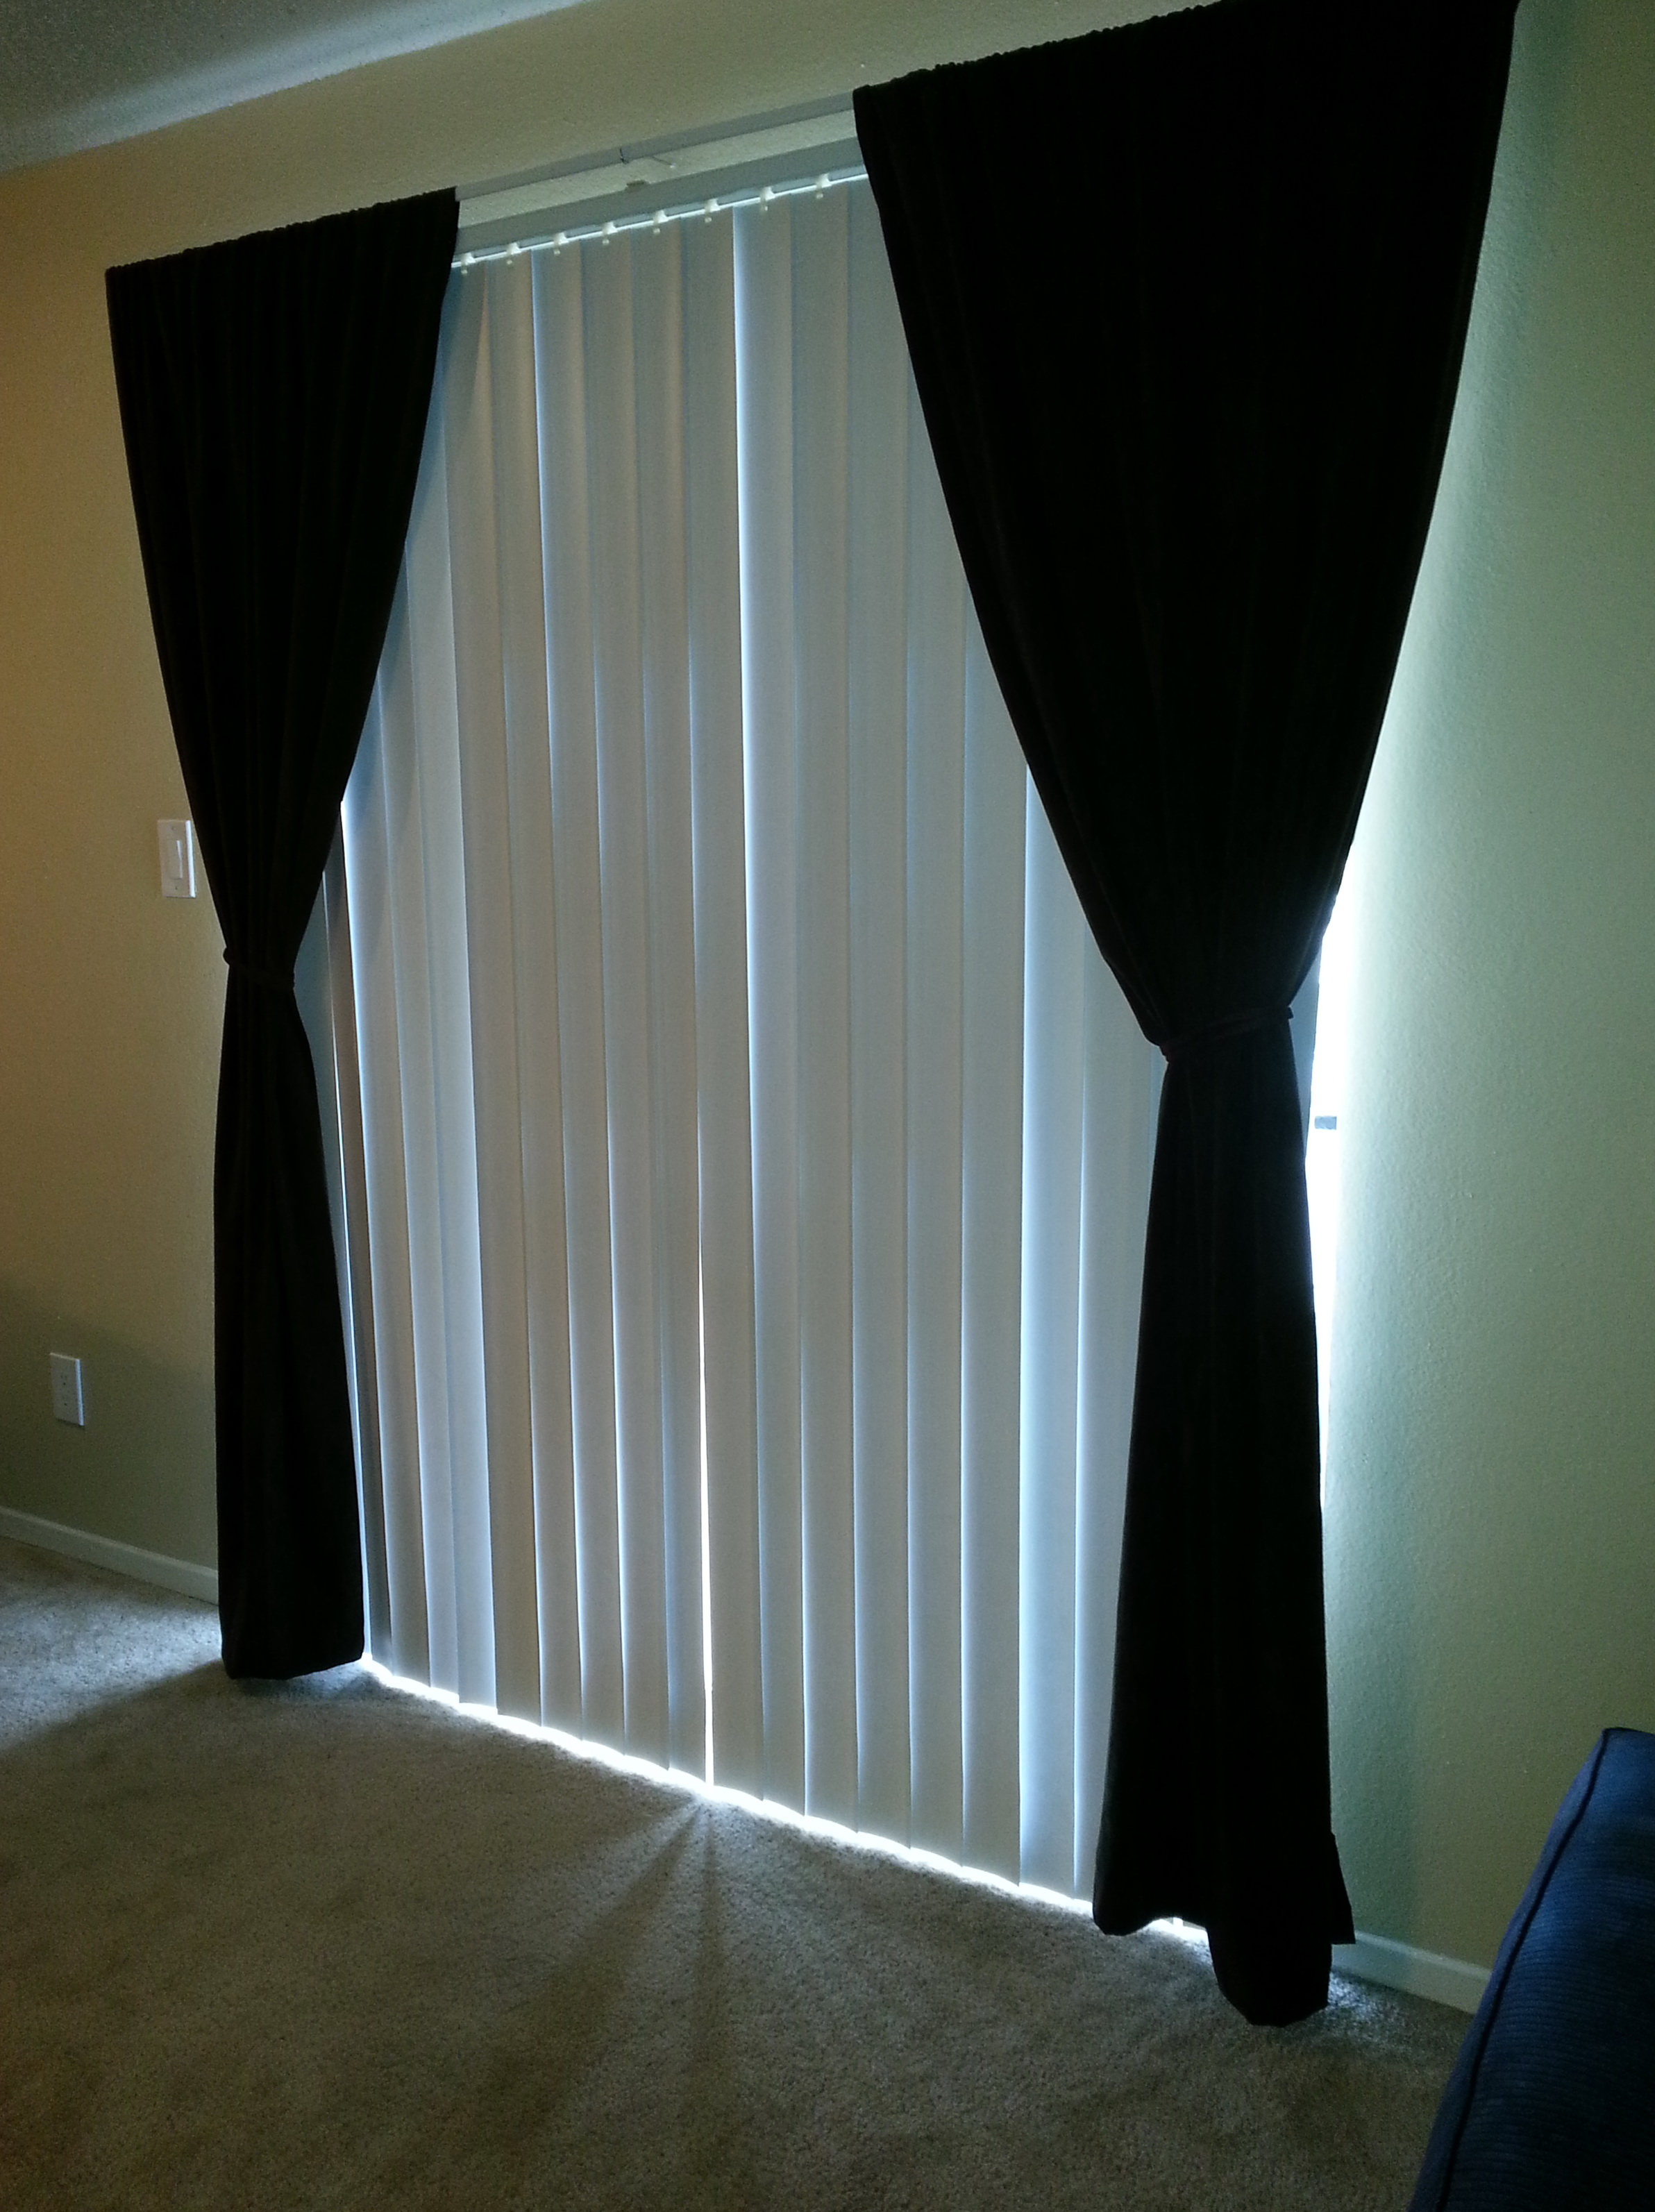 Vertical Blinds And Curtains Together  Home Design Ideas